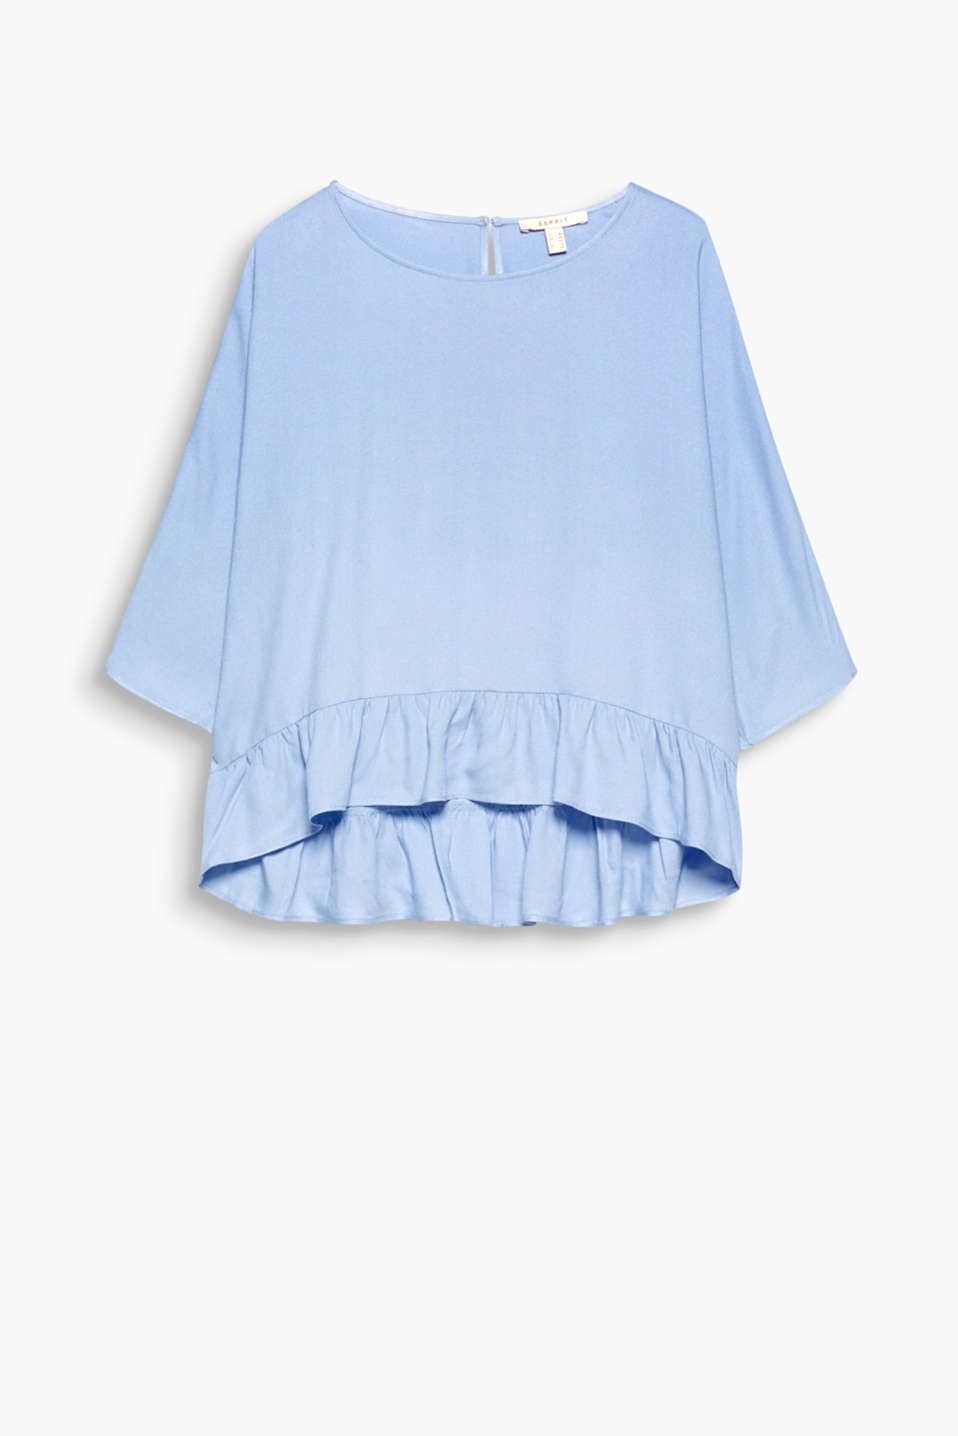 This blouse in a boy design with an attached flared, frilled hem comes in a fine, flowing look!